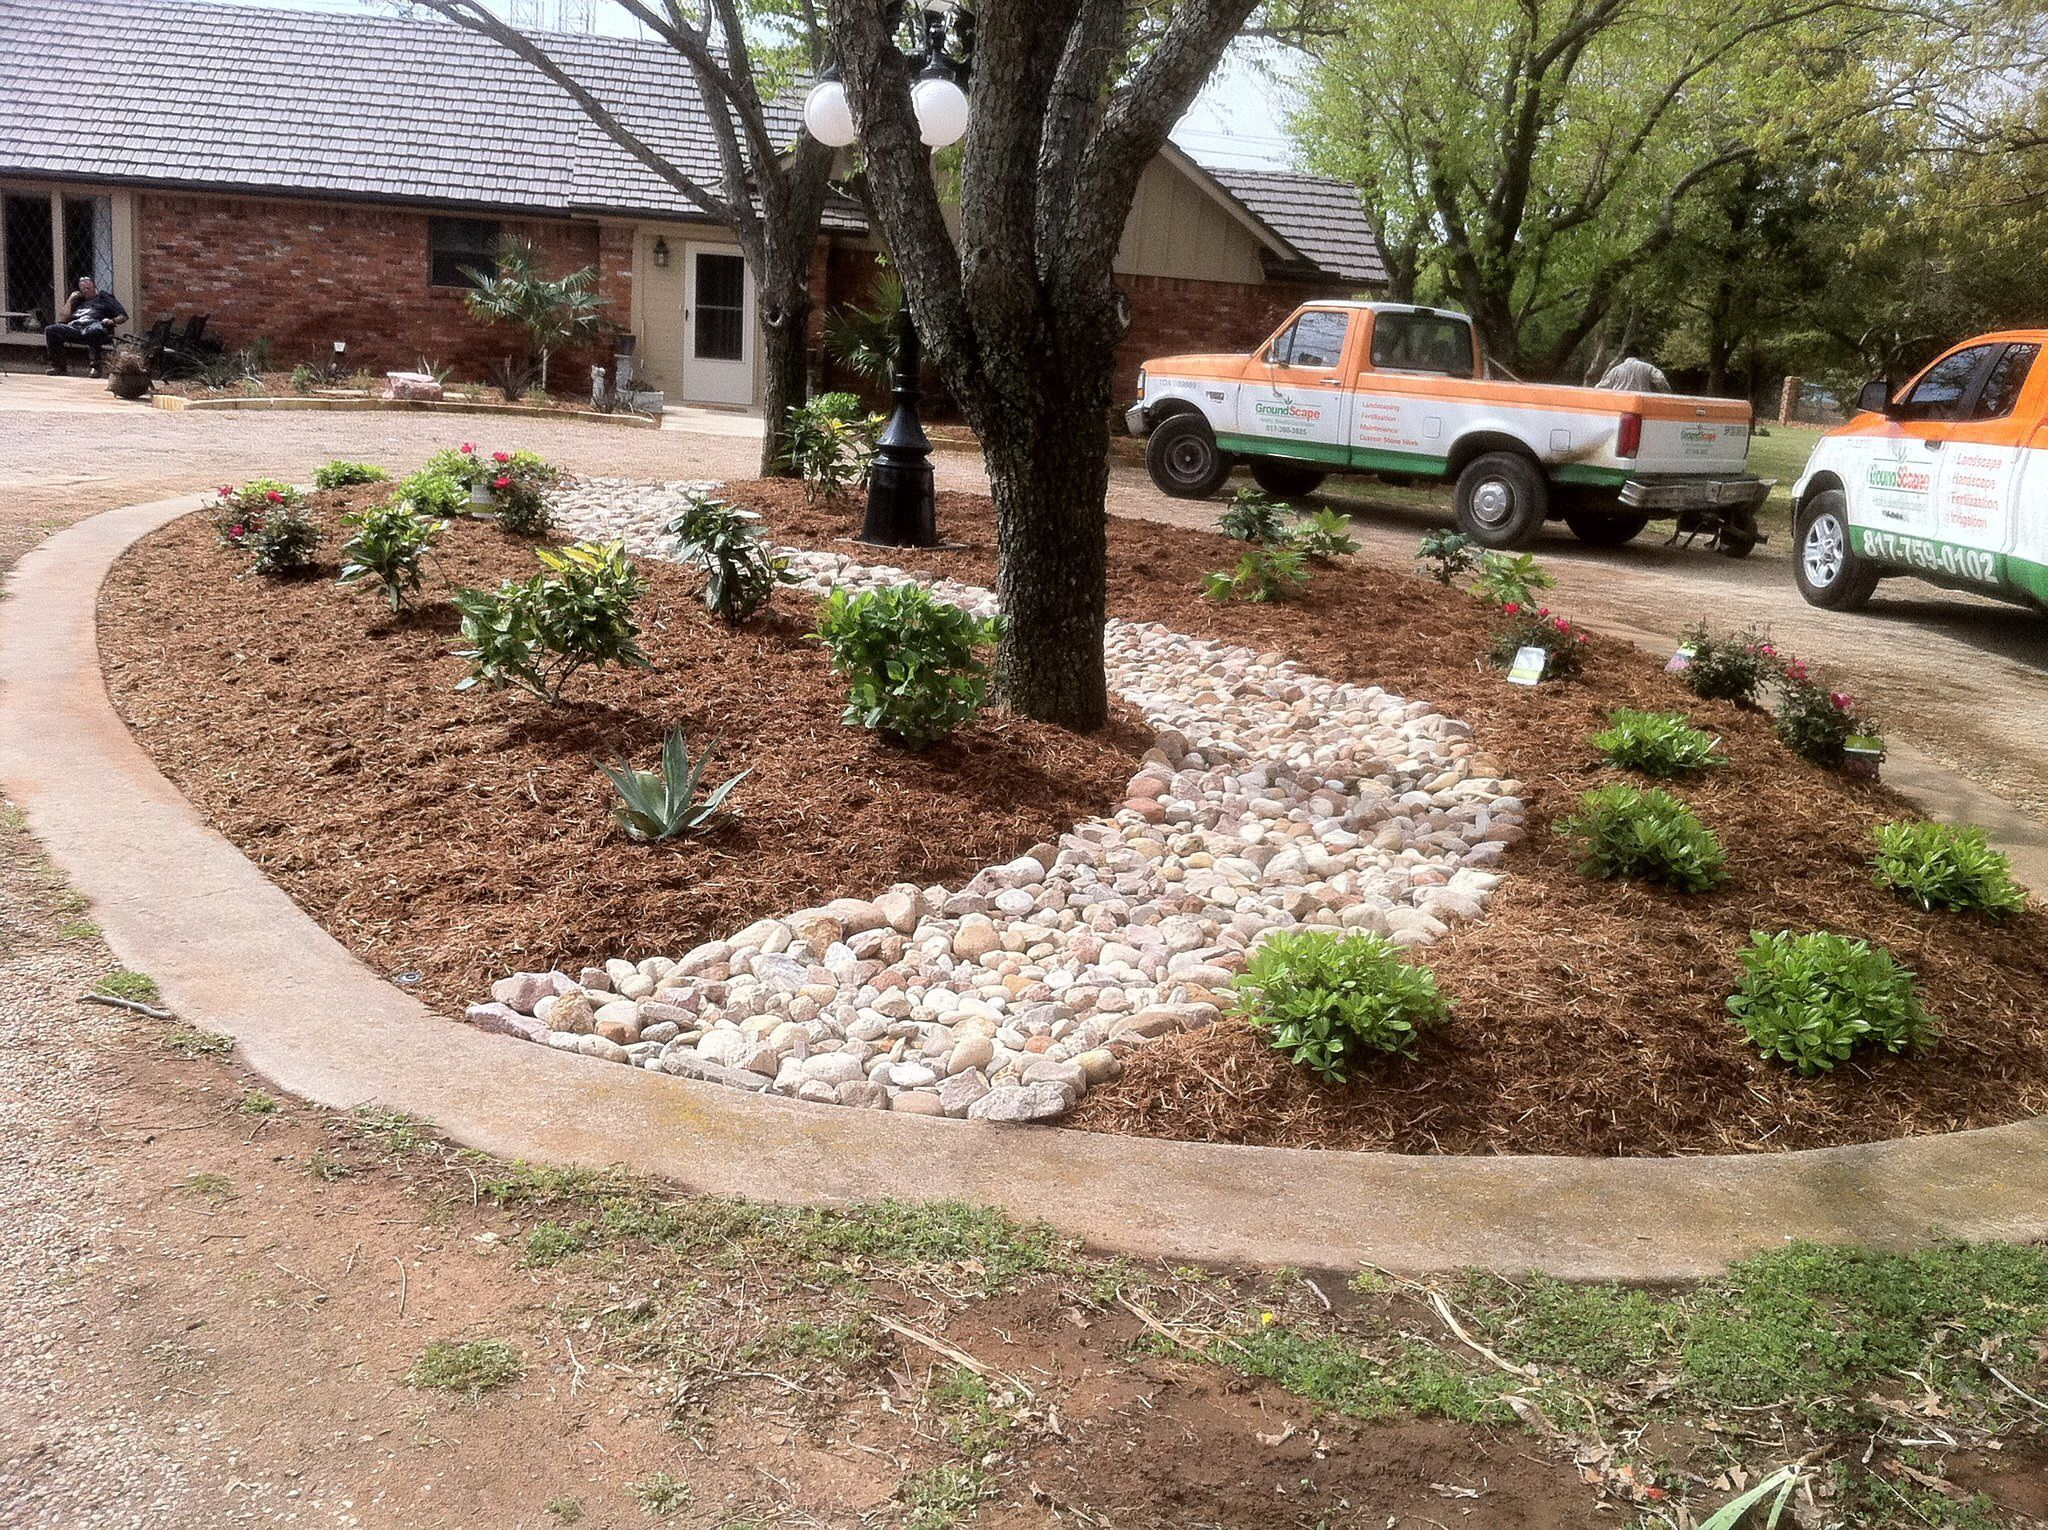 Groundscape A Fort Worth Landscape Company Installs Plants And A Drainage Channel Through A Circle Dr Circle Driveway Landscaping Landscape Design Front Yard